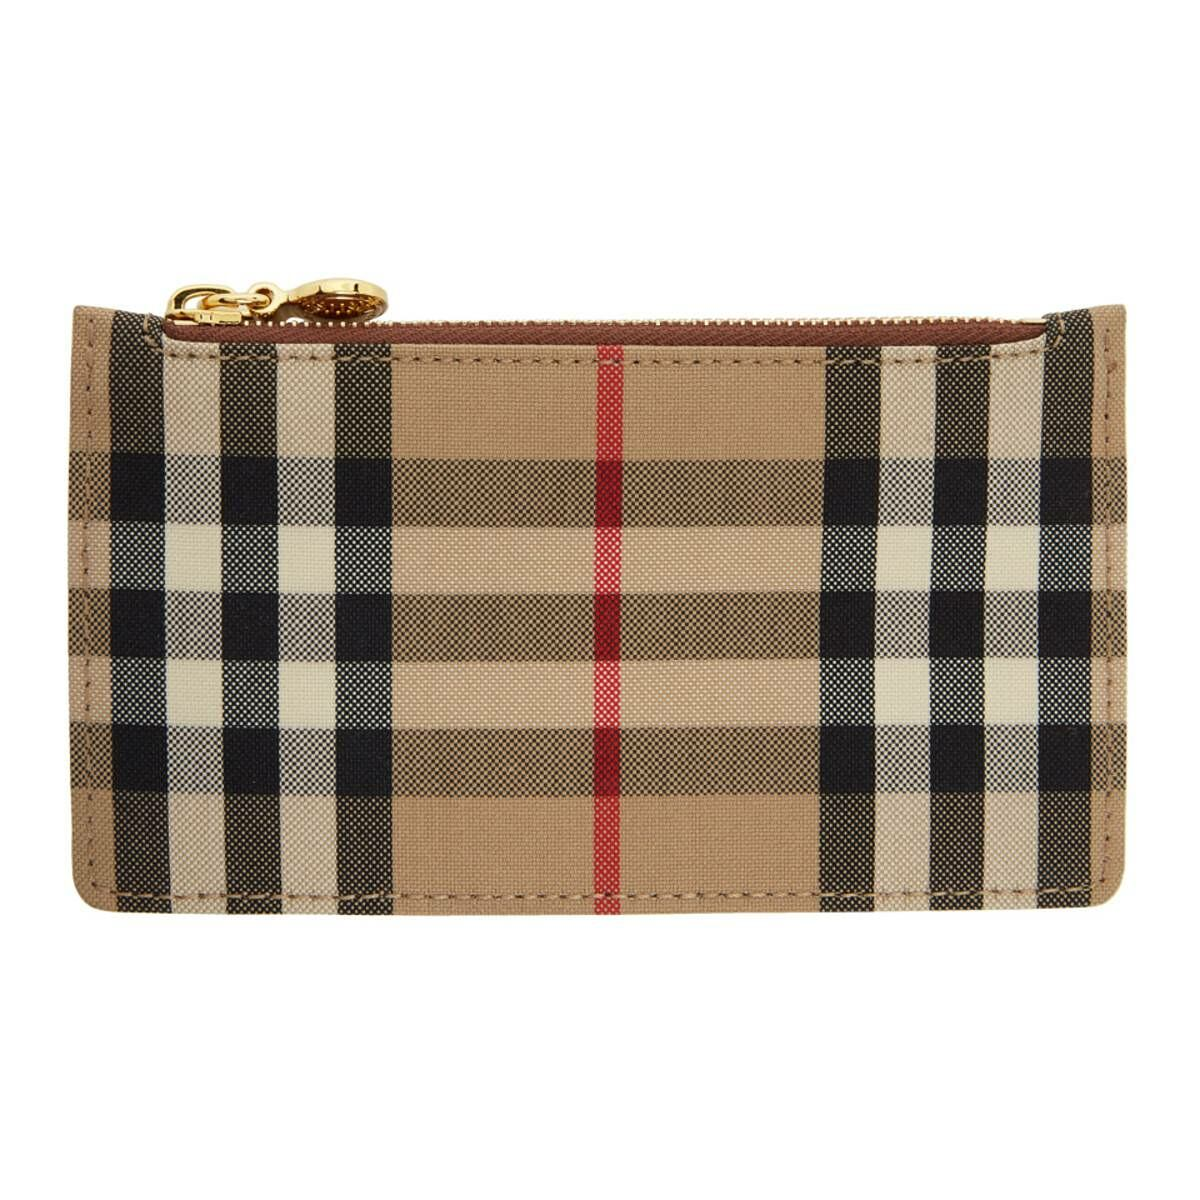 Burberry Beige and Brown Vintage Check Card Holder Ssense USA WOMEN Women ACCESSORIES Womens WALLETS